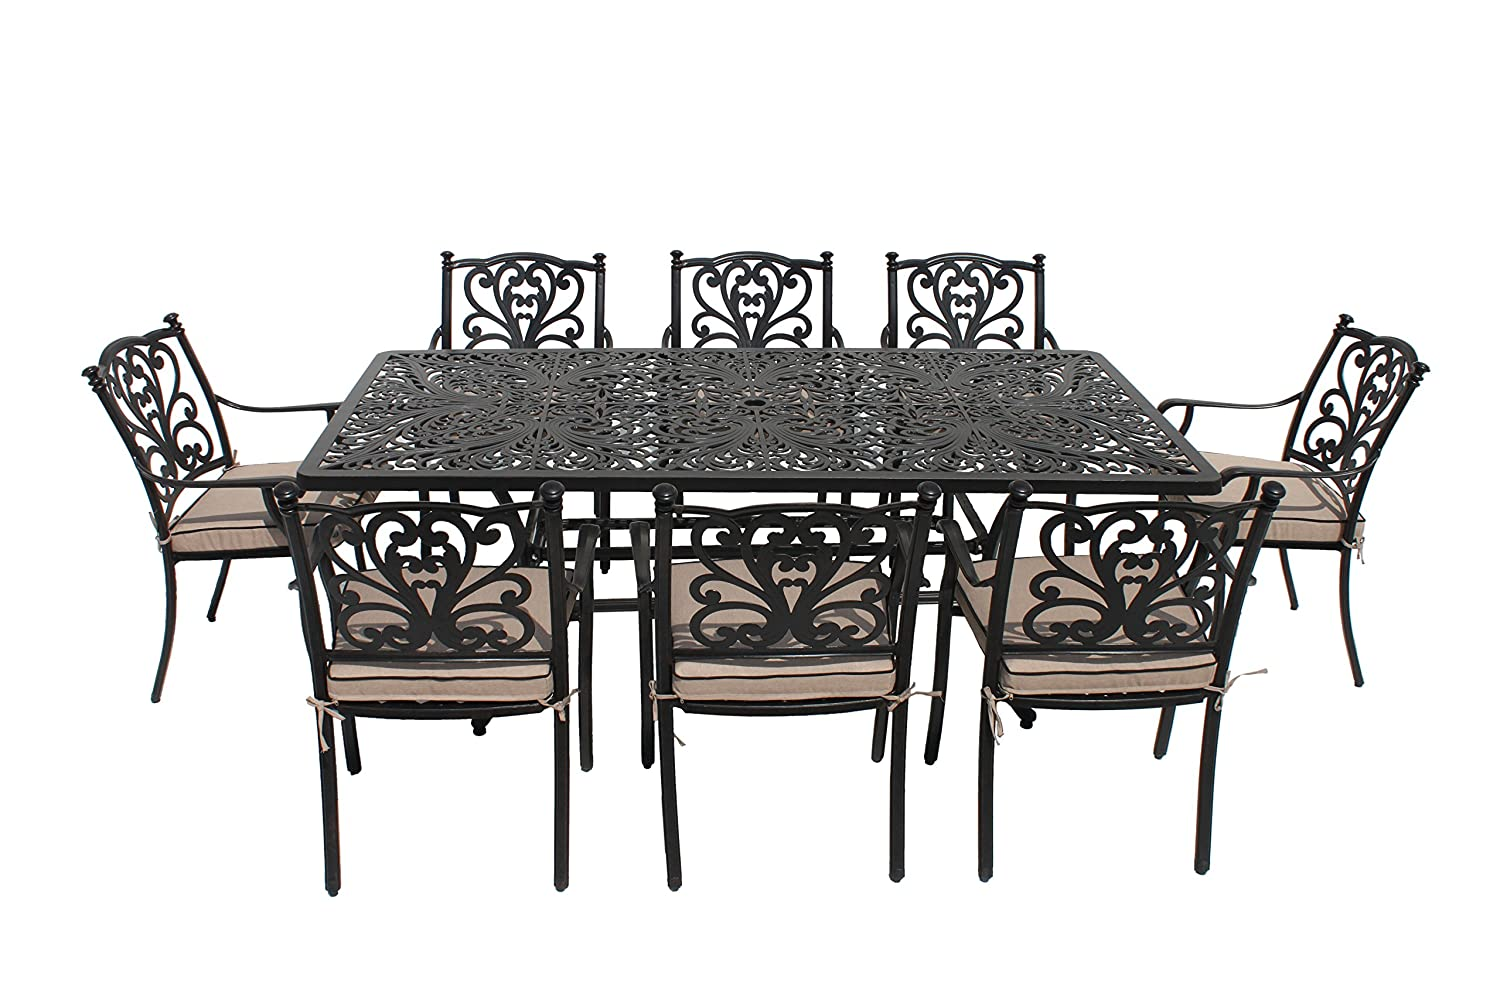 2d768e021e5c LG Outdoor Devon 105cm Round 4 Seat Dining Set With Blended Beige Cushions  - Bronze: Amazon.co.uk: Garden & Outdoors